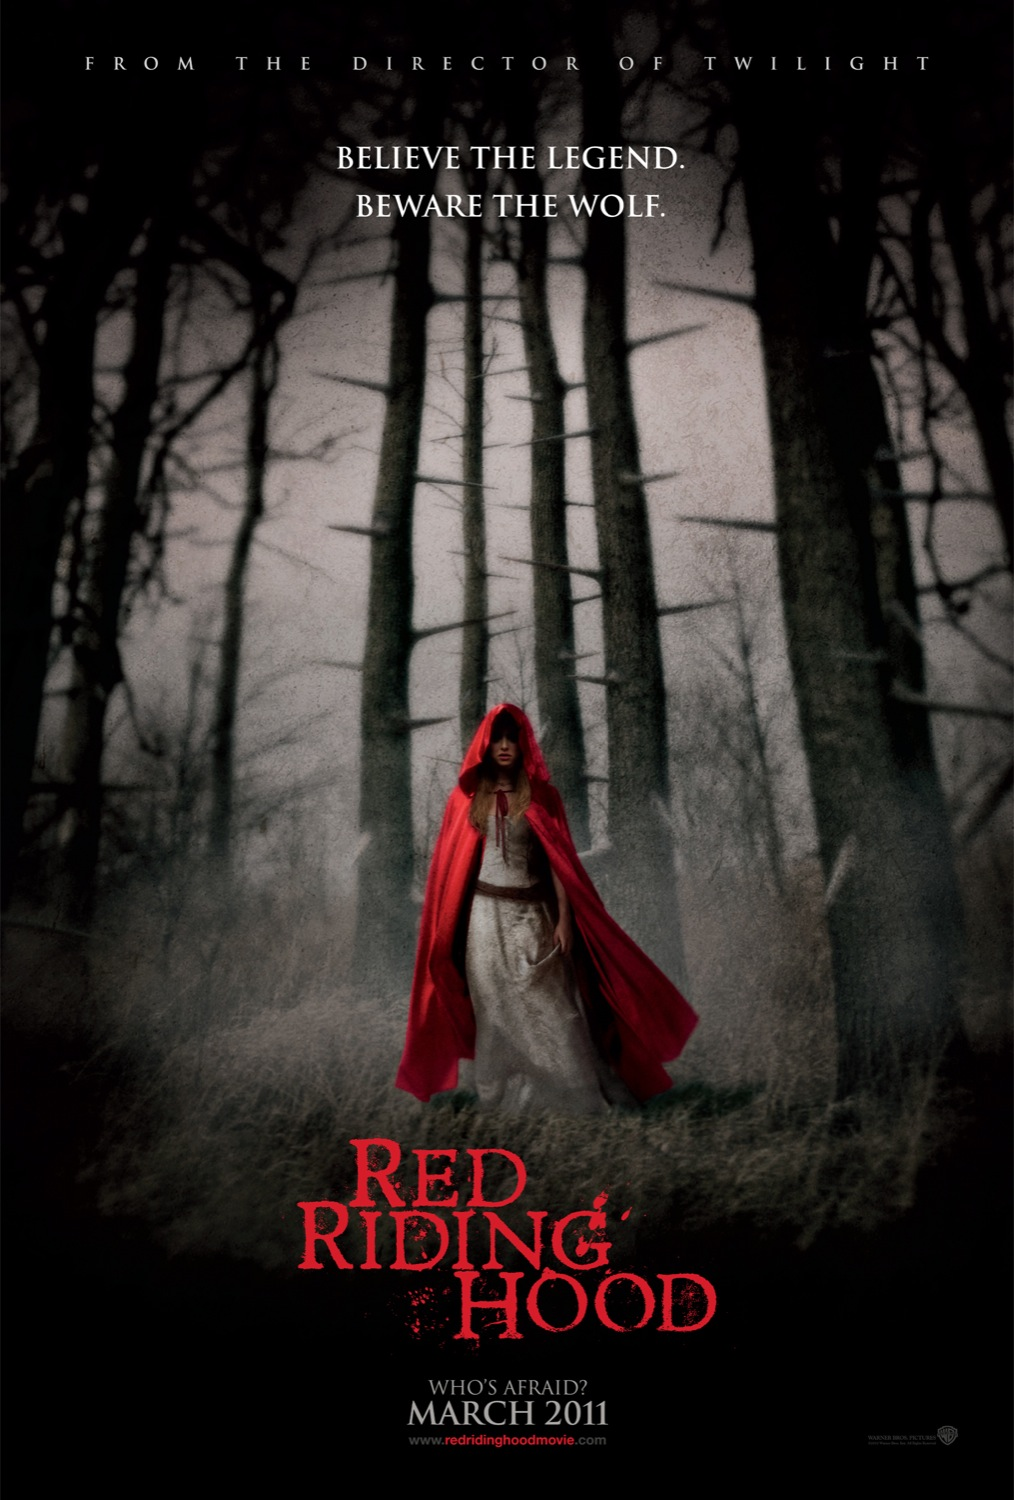 Red riding hood 2011 google drive / So well remembered 1947 dvd